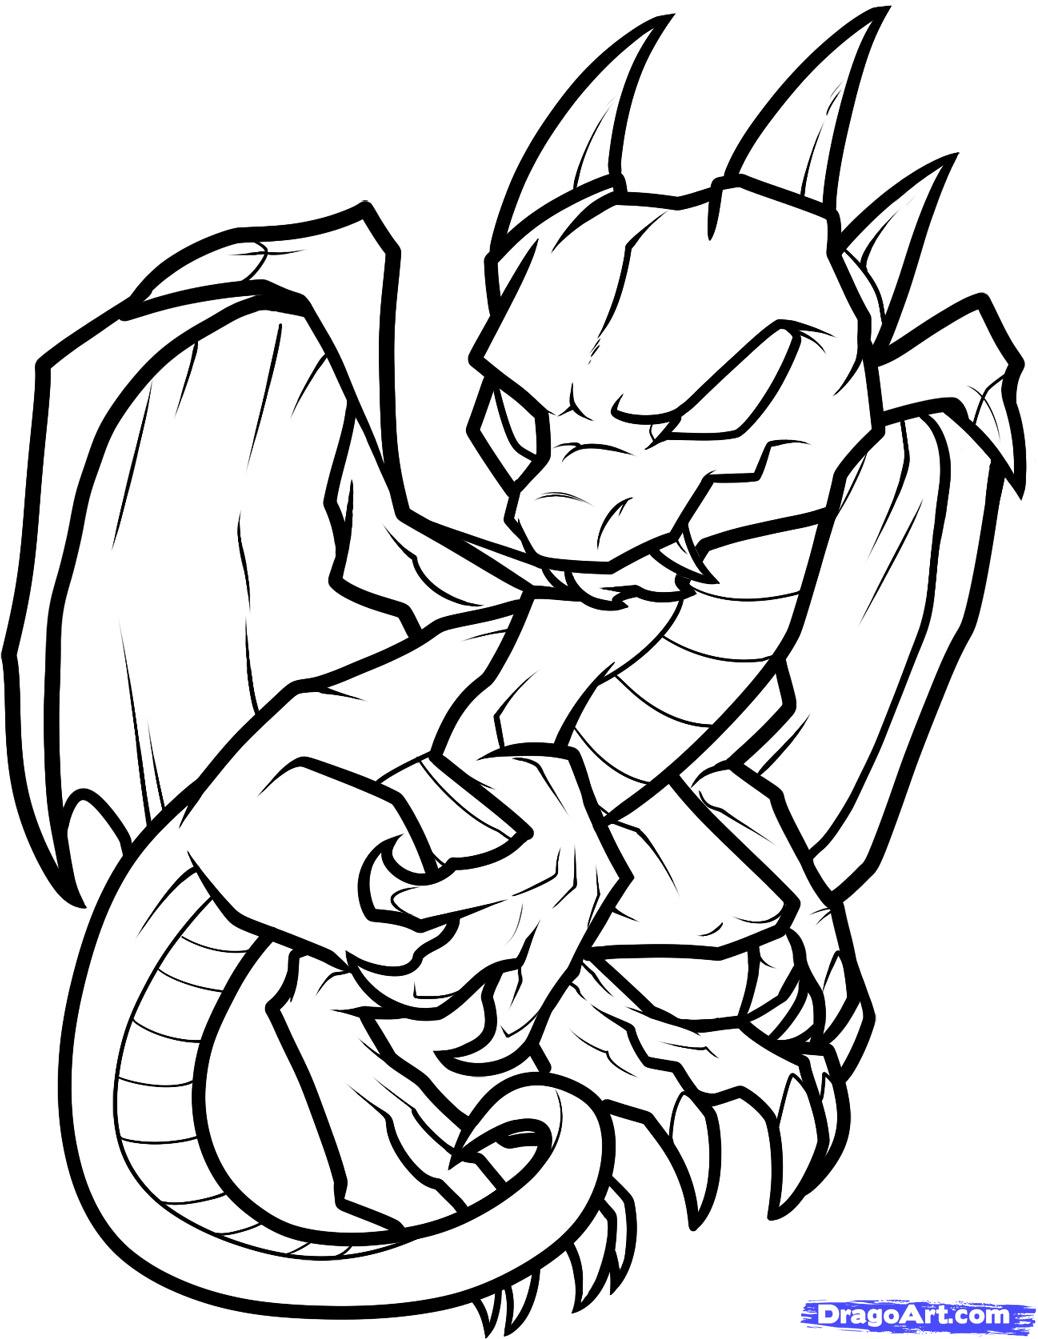 1038x1339 Dragon Coloring Pages How To Draw An Anthro Baby